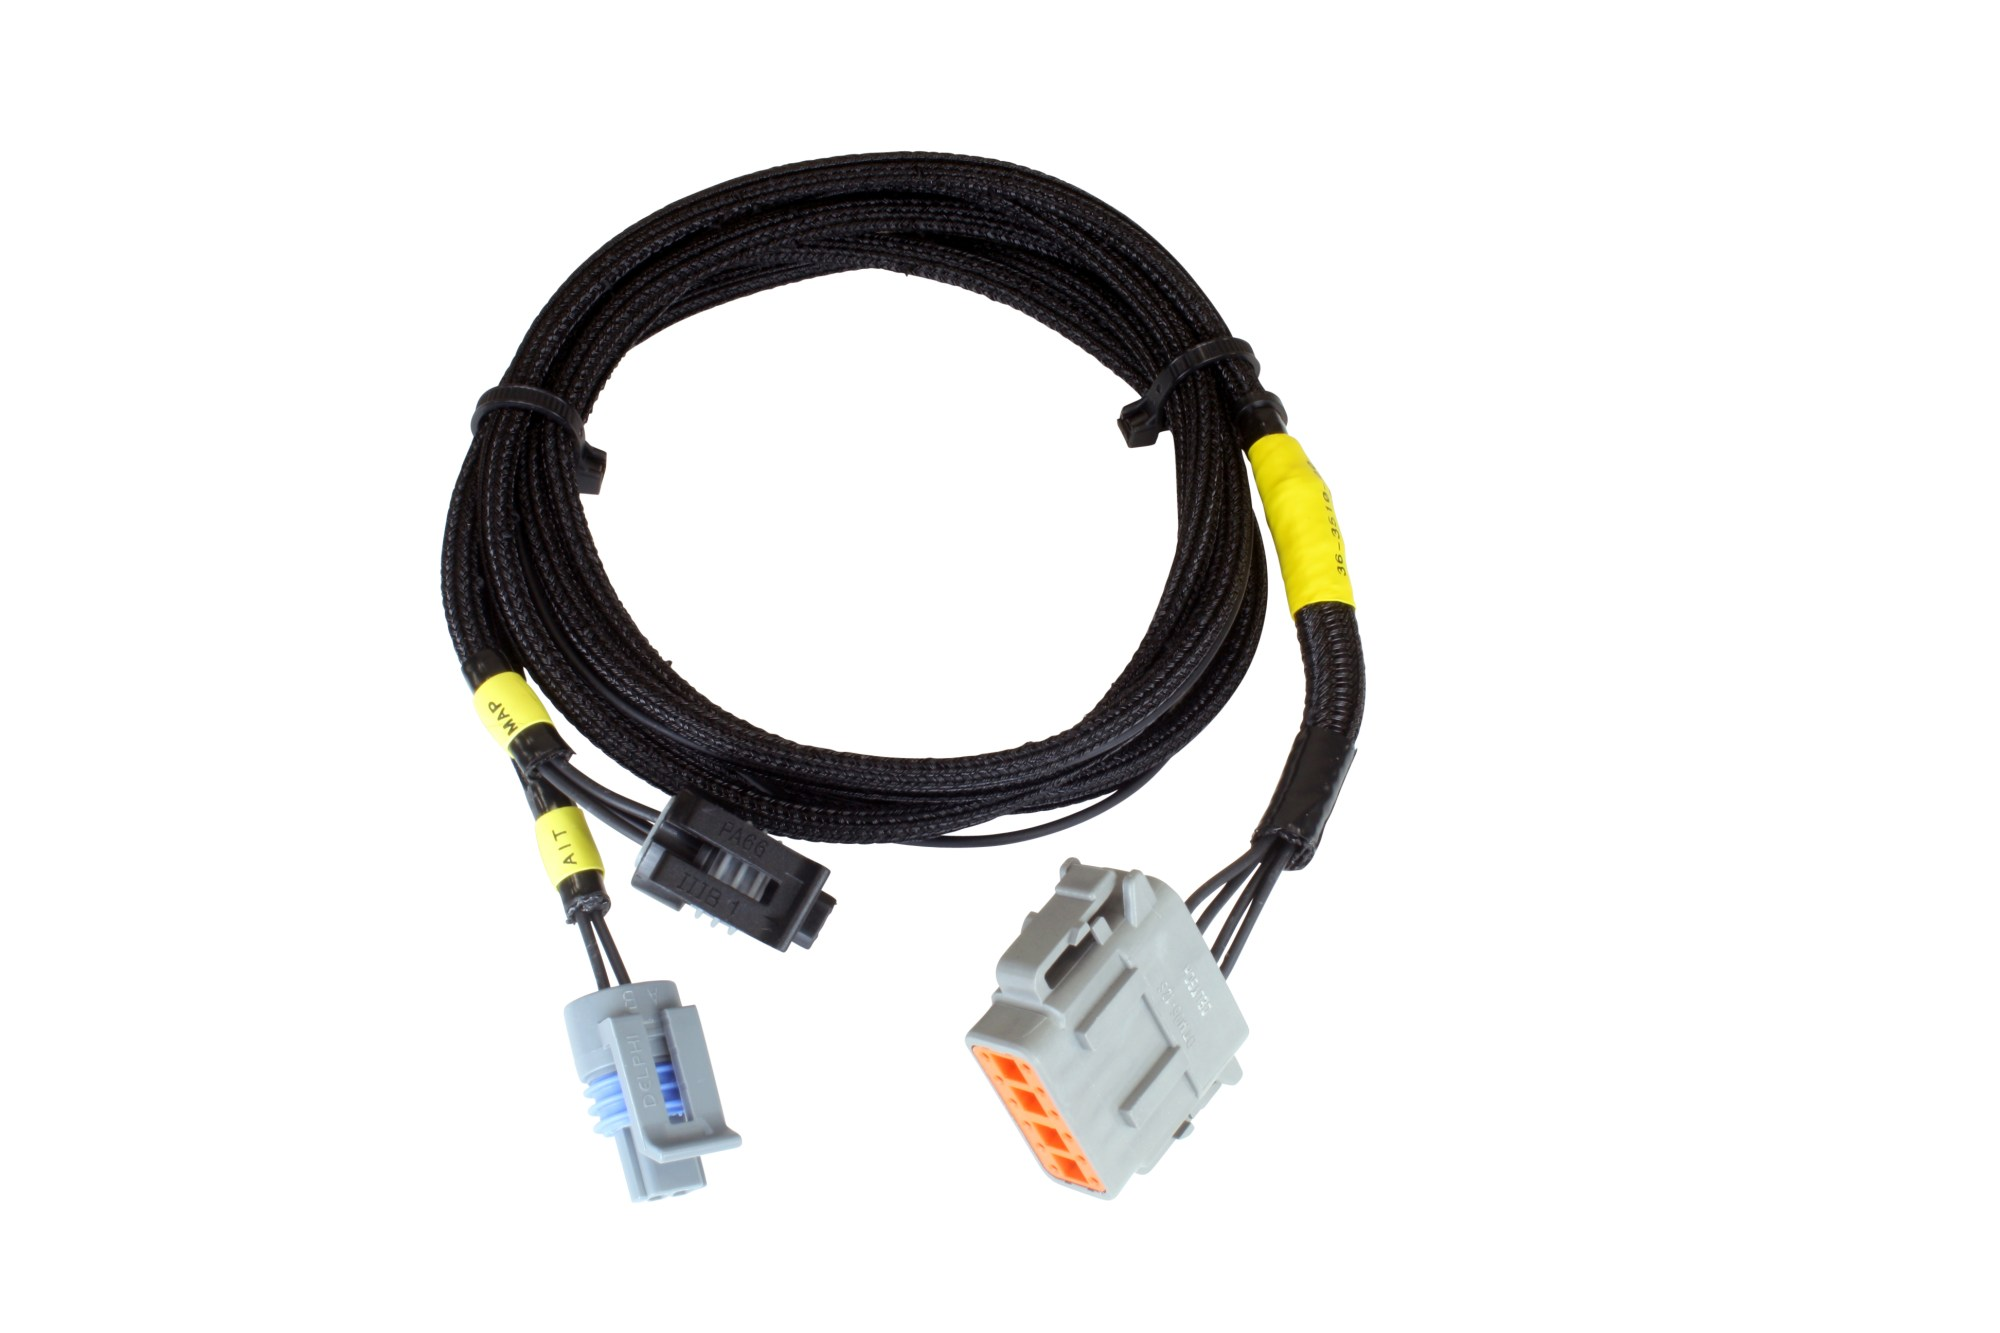 hight resolution of infinity aux harness for aem iat and map sensor 72 length turbototal